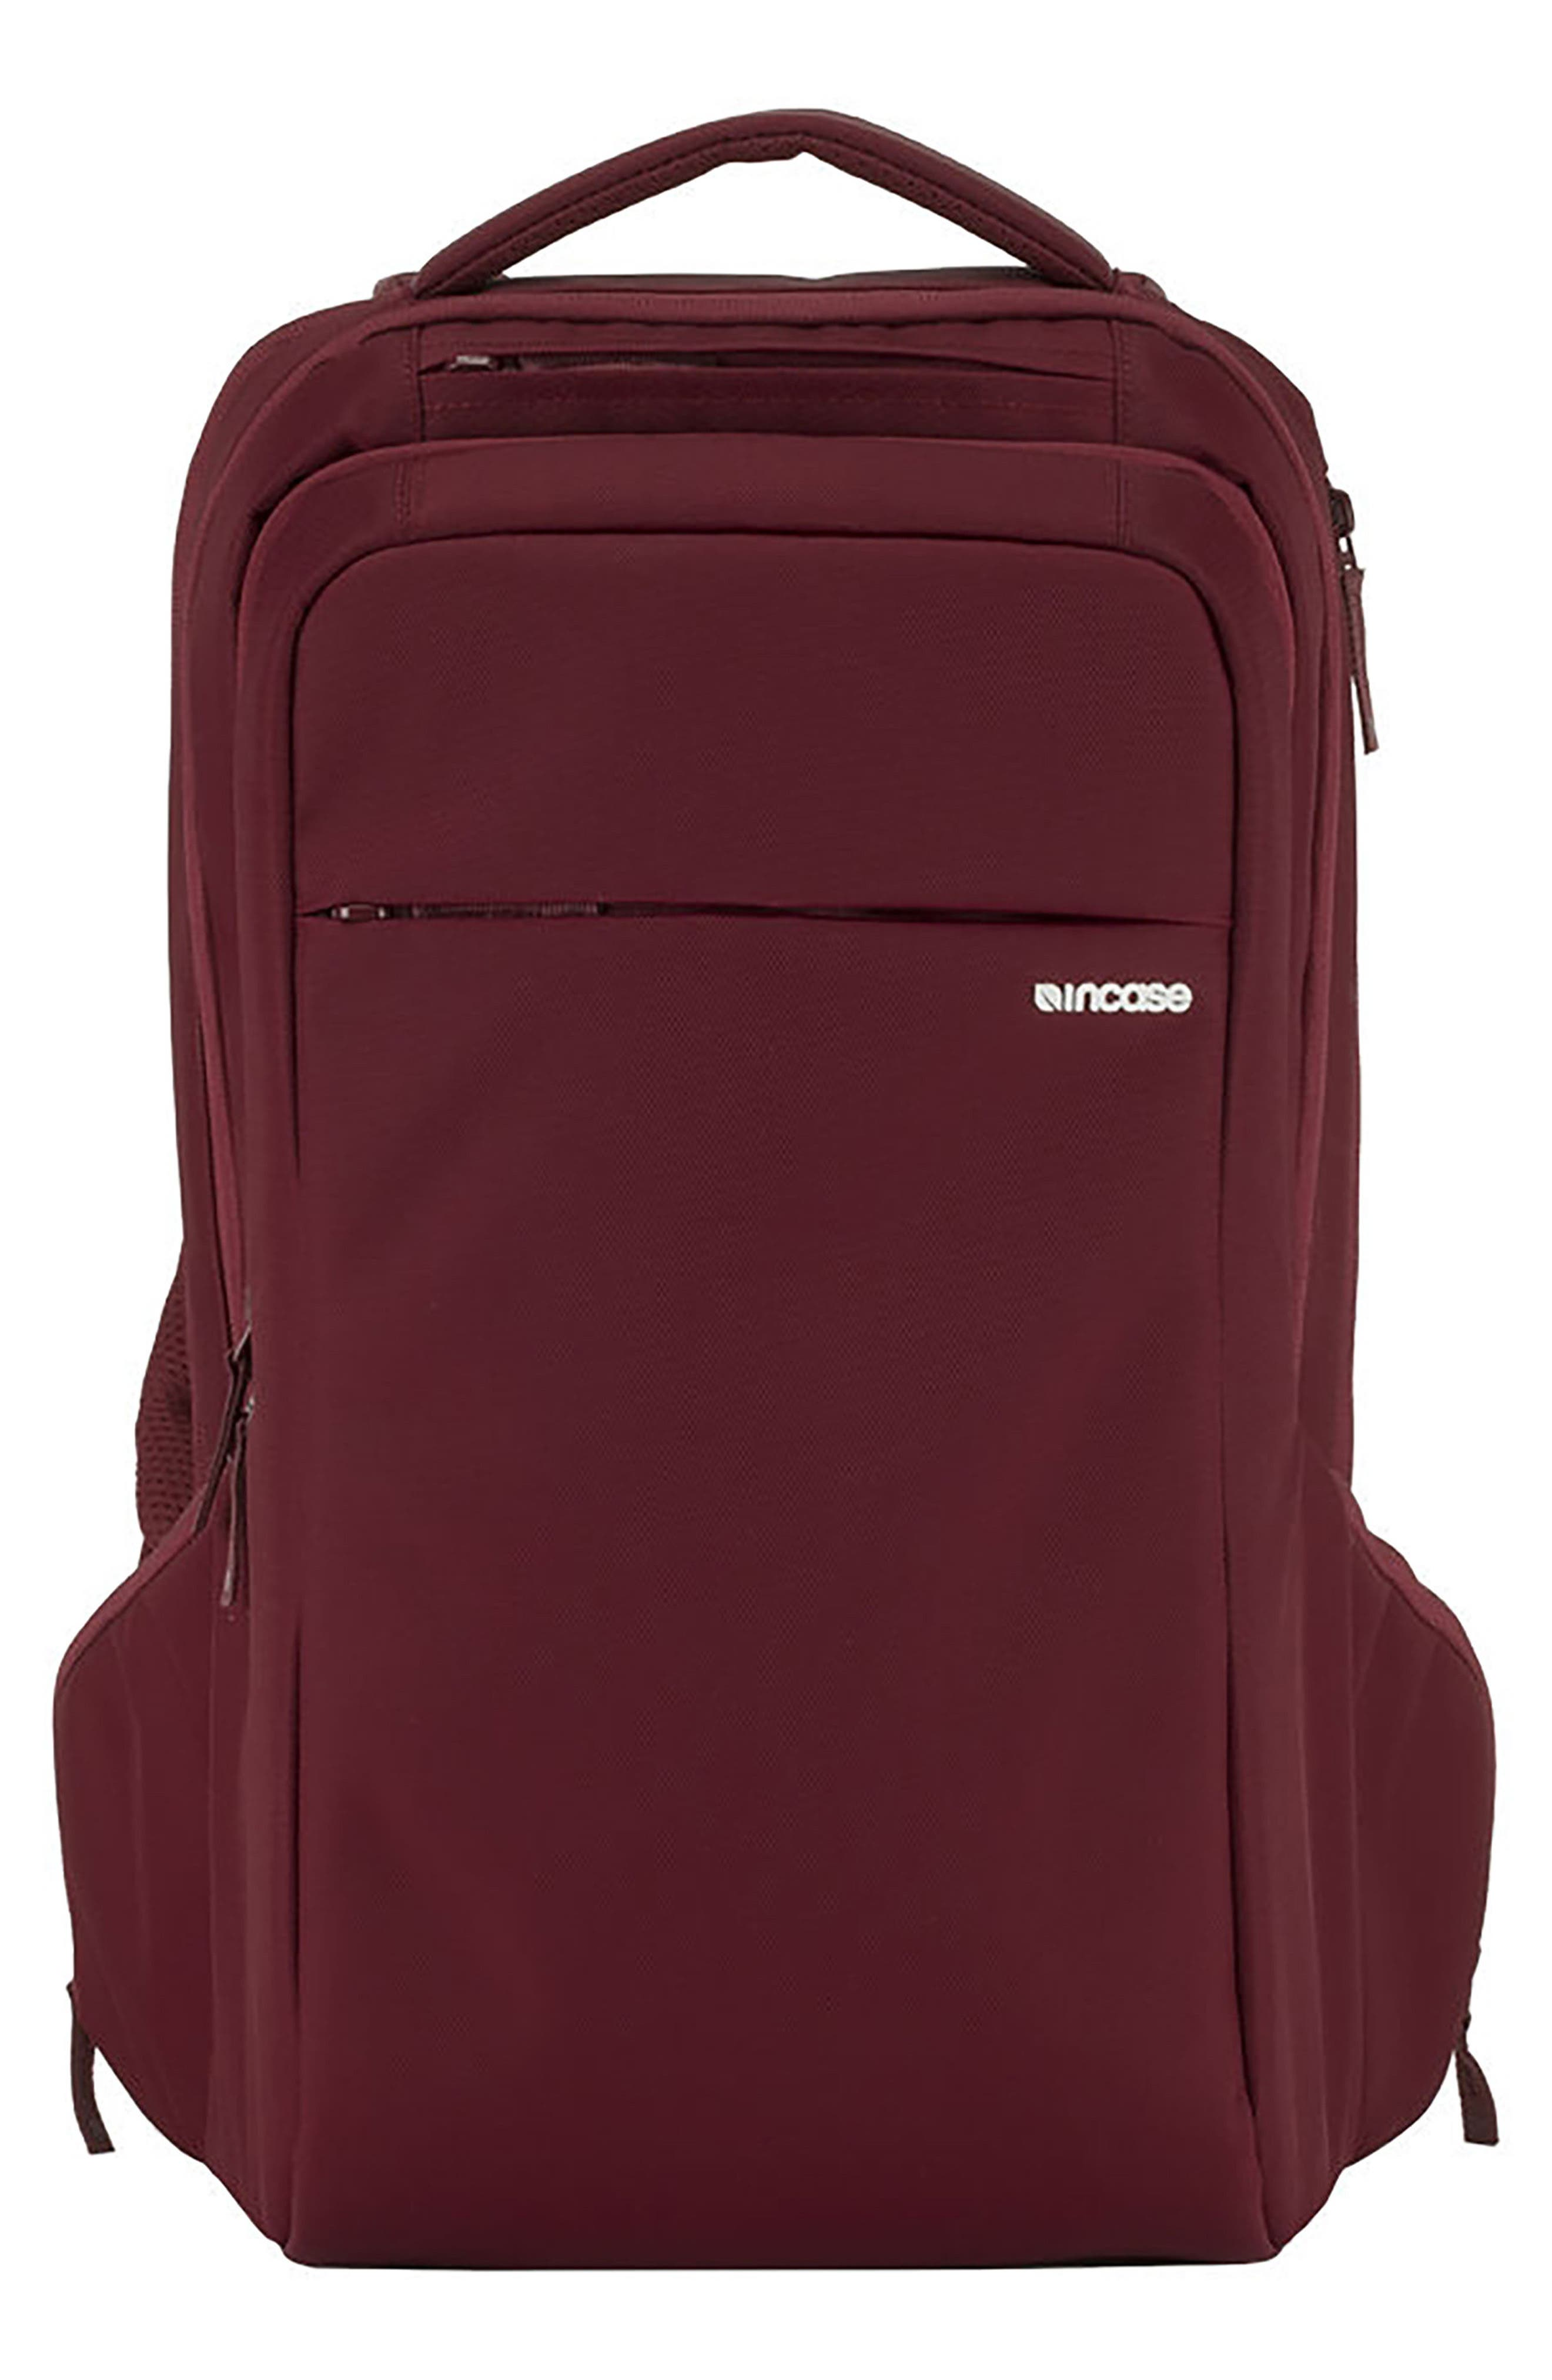 Main Image - Incase Designs Icon Backpack